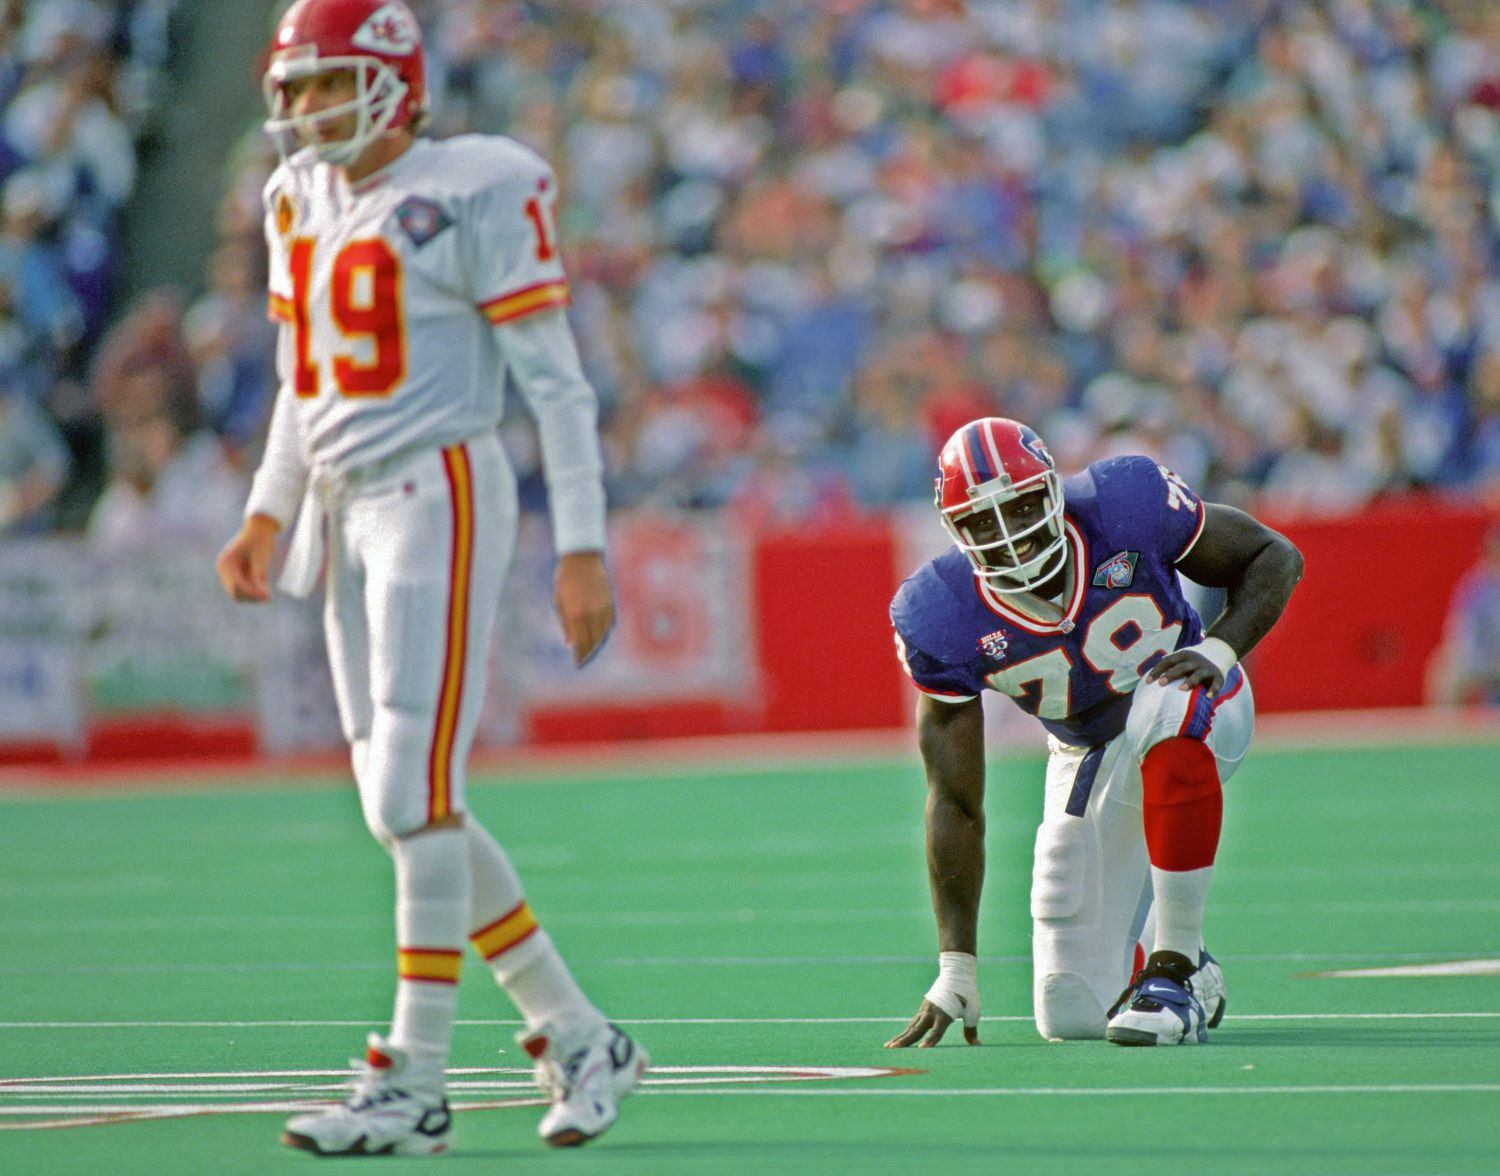 Bruce Smith has the most sacks in NFL history with 200 quarterback takedowns in 279 career games.